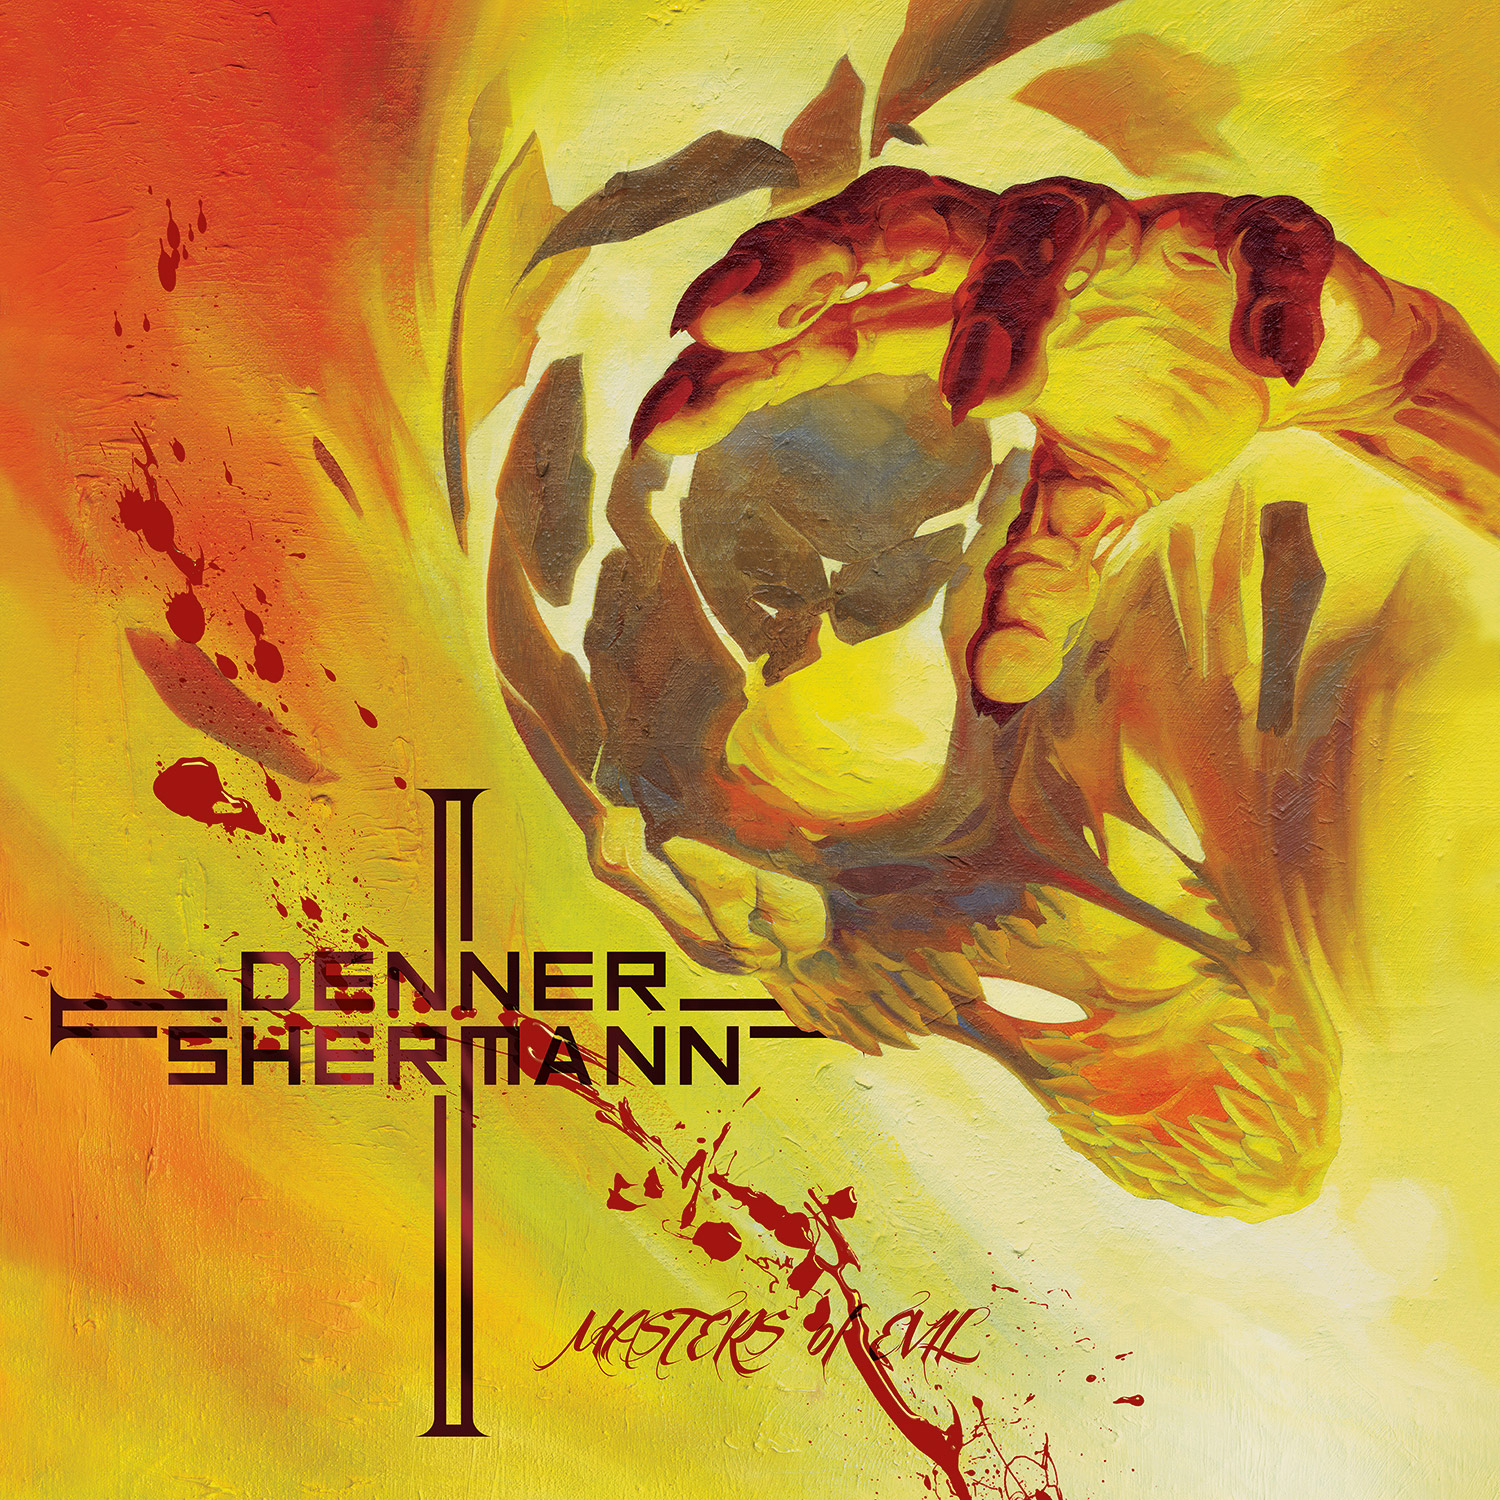 Denner Shermann Quot Masters Of Evil Quot Cd Metal Blade Records